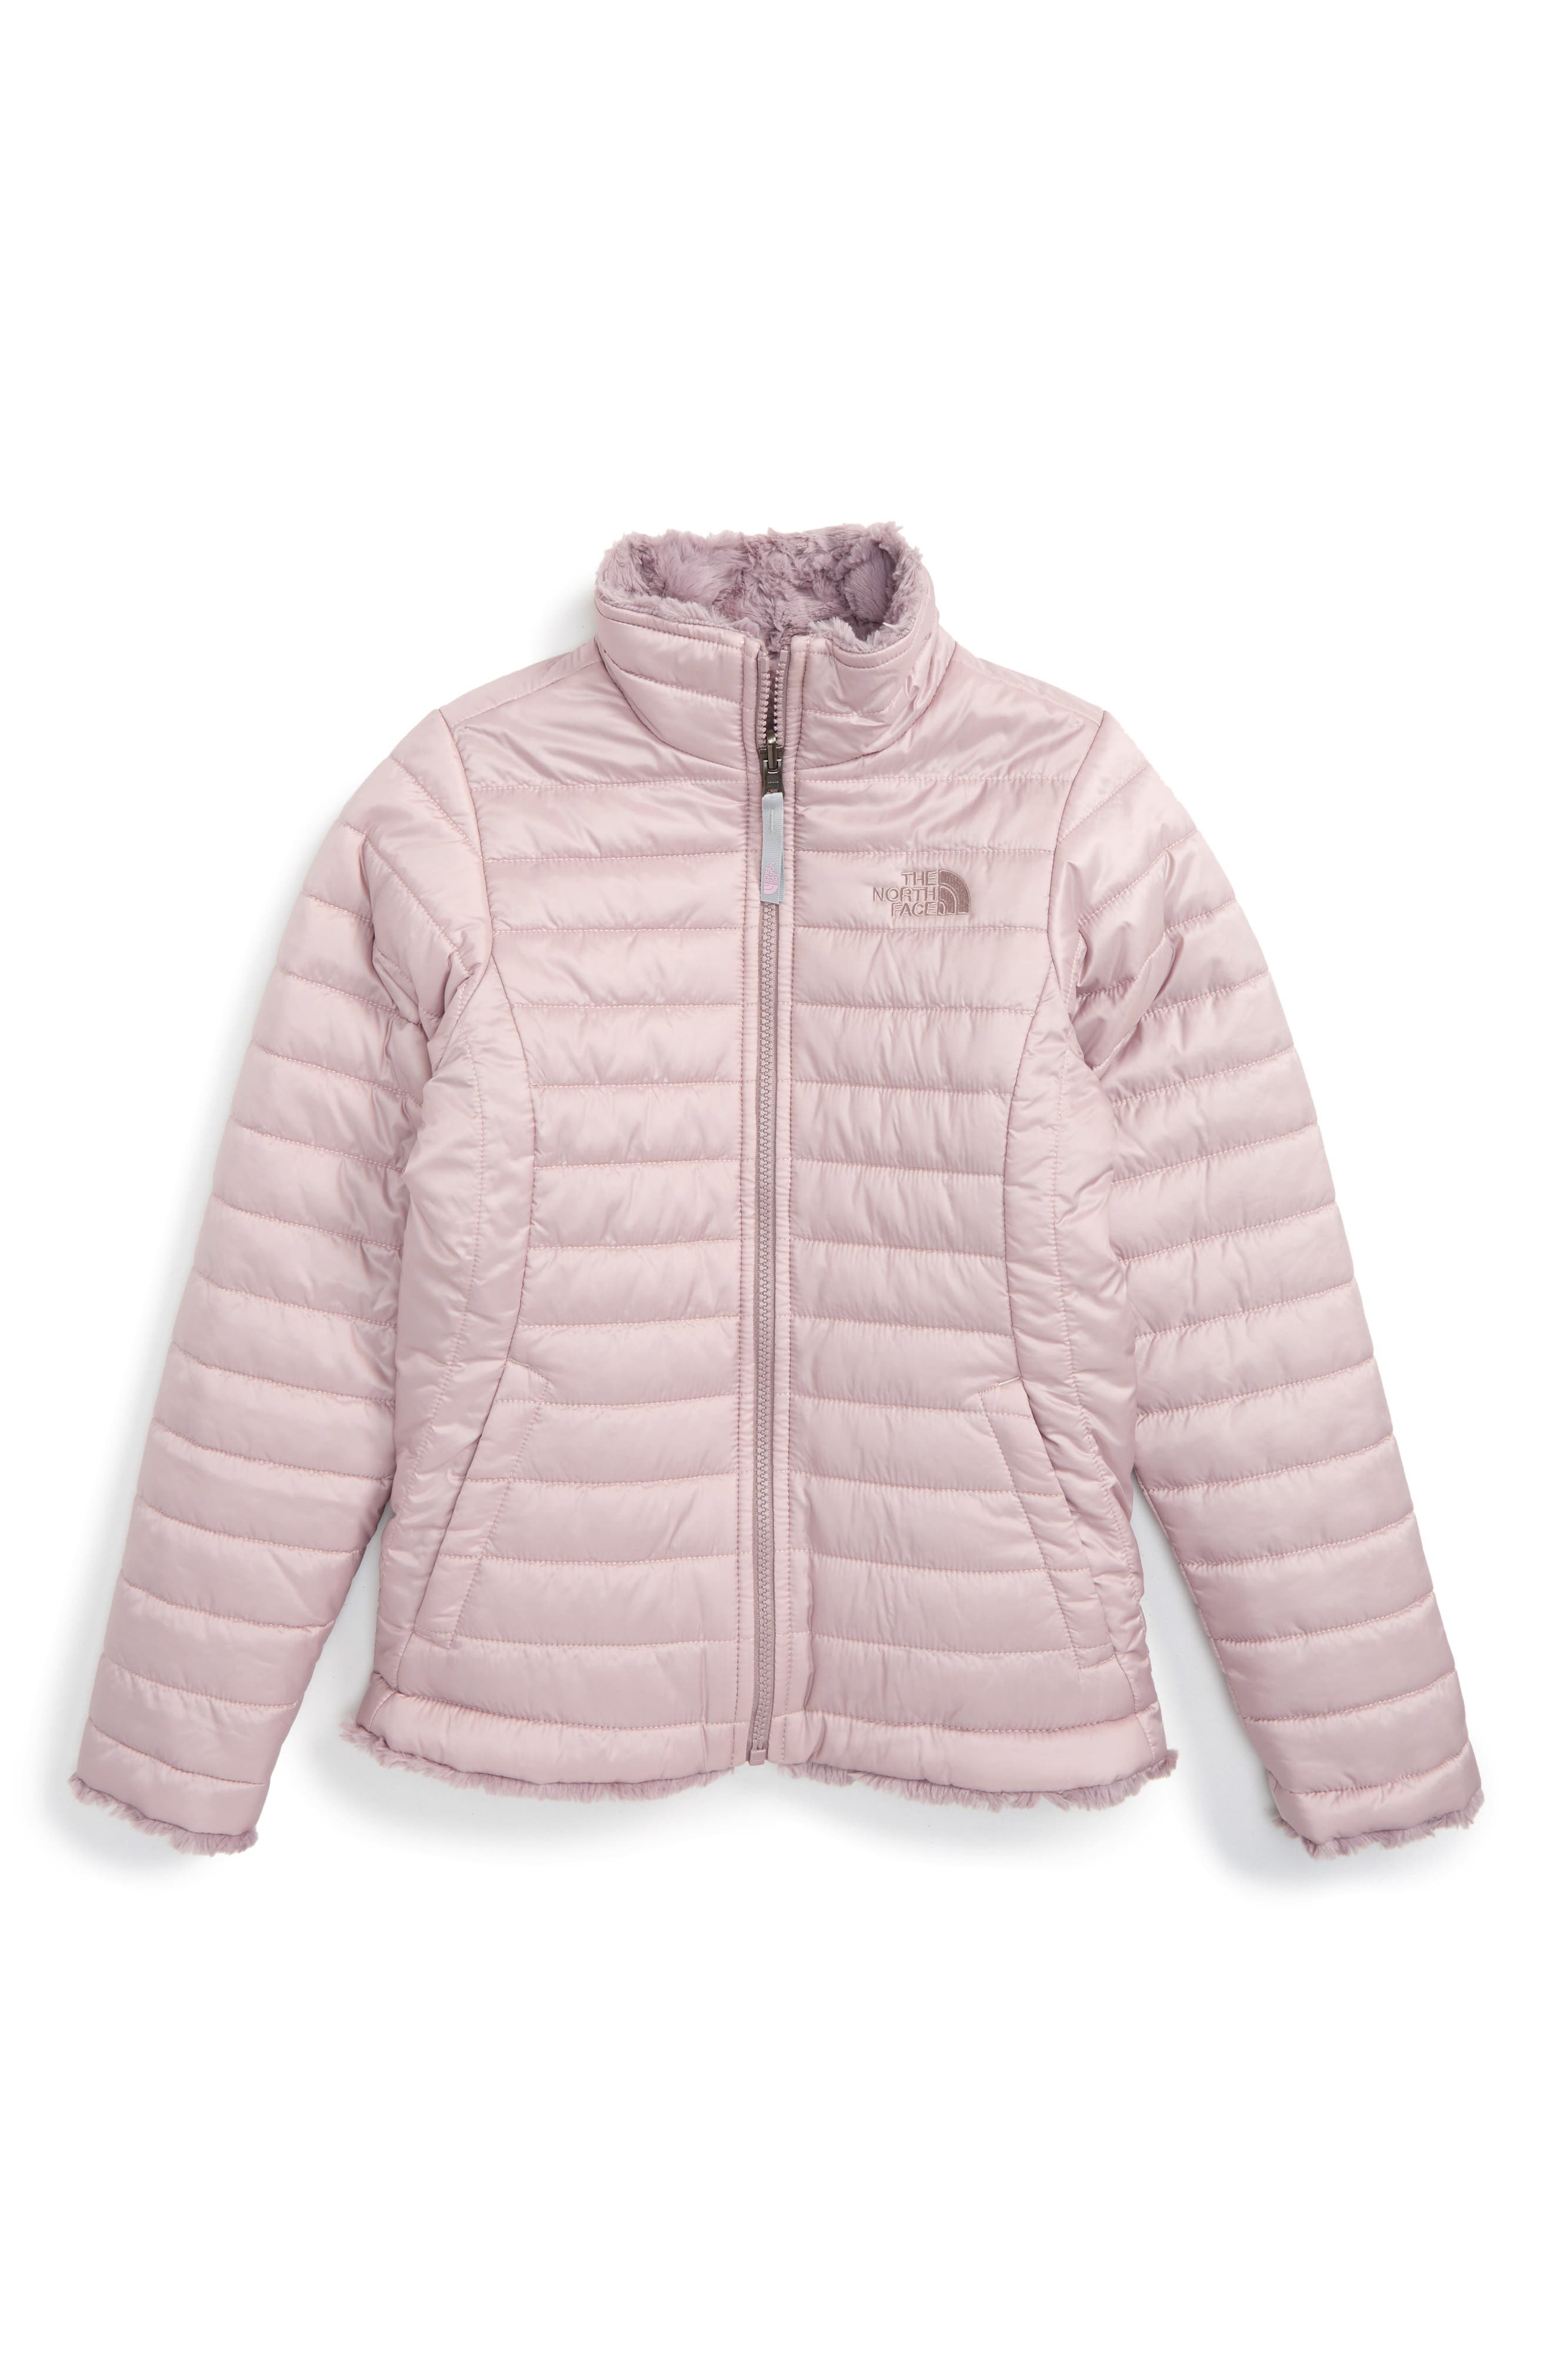 'Mossbud Swirl' Reversible Water Resistant Jacket,                             Main thumbnail 1, color,                             Burnished Lilac